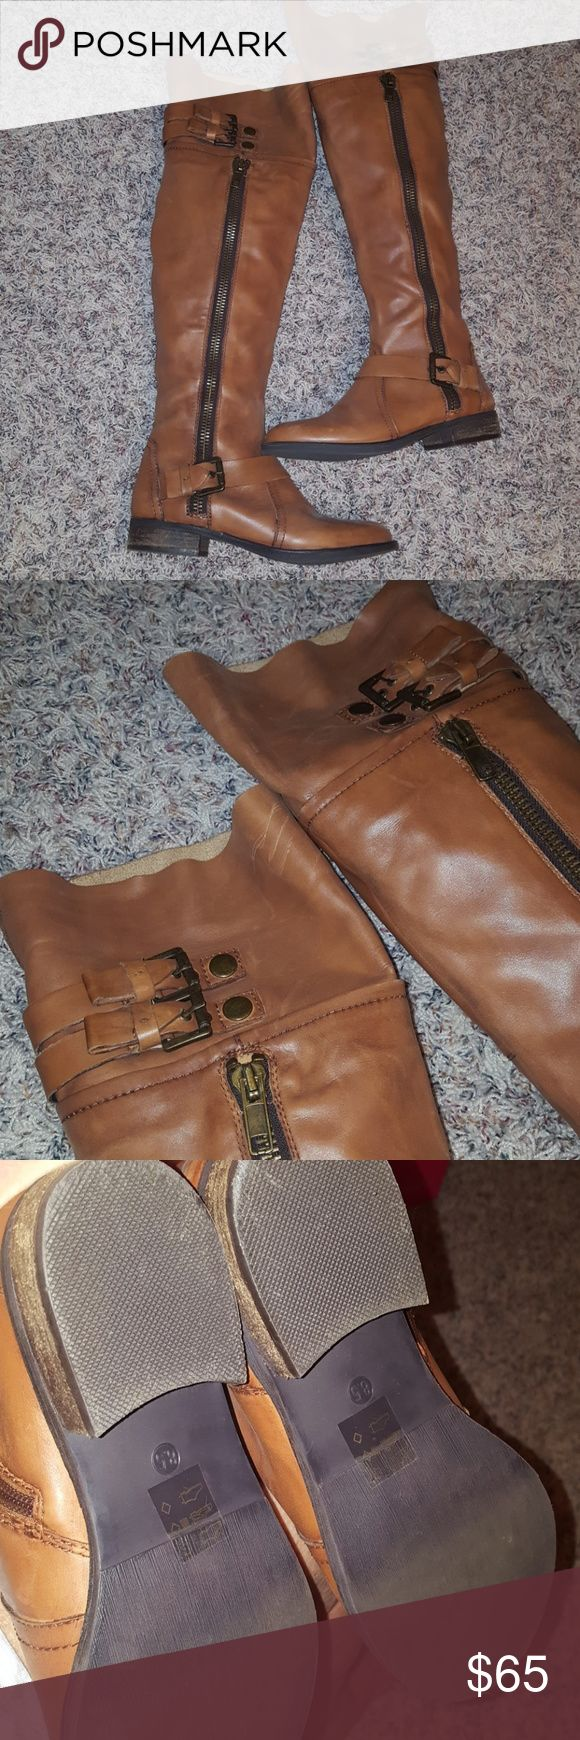 Steve Madden over knee boots EUC Buttery soft leather.  Cognac color.  8 1/2 True to size  Inside zip Cuff can be rolled down  Great with dresses, skirts or leggings.  EUC  Price Firm.  Bought at Steve Madden store Charleston SC King St. Steve Madden Shoes Over the Knee Boots